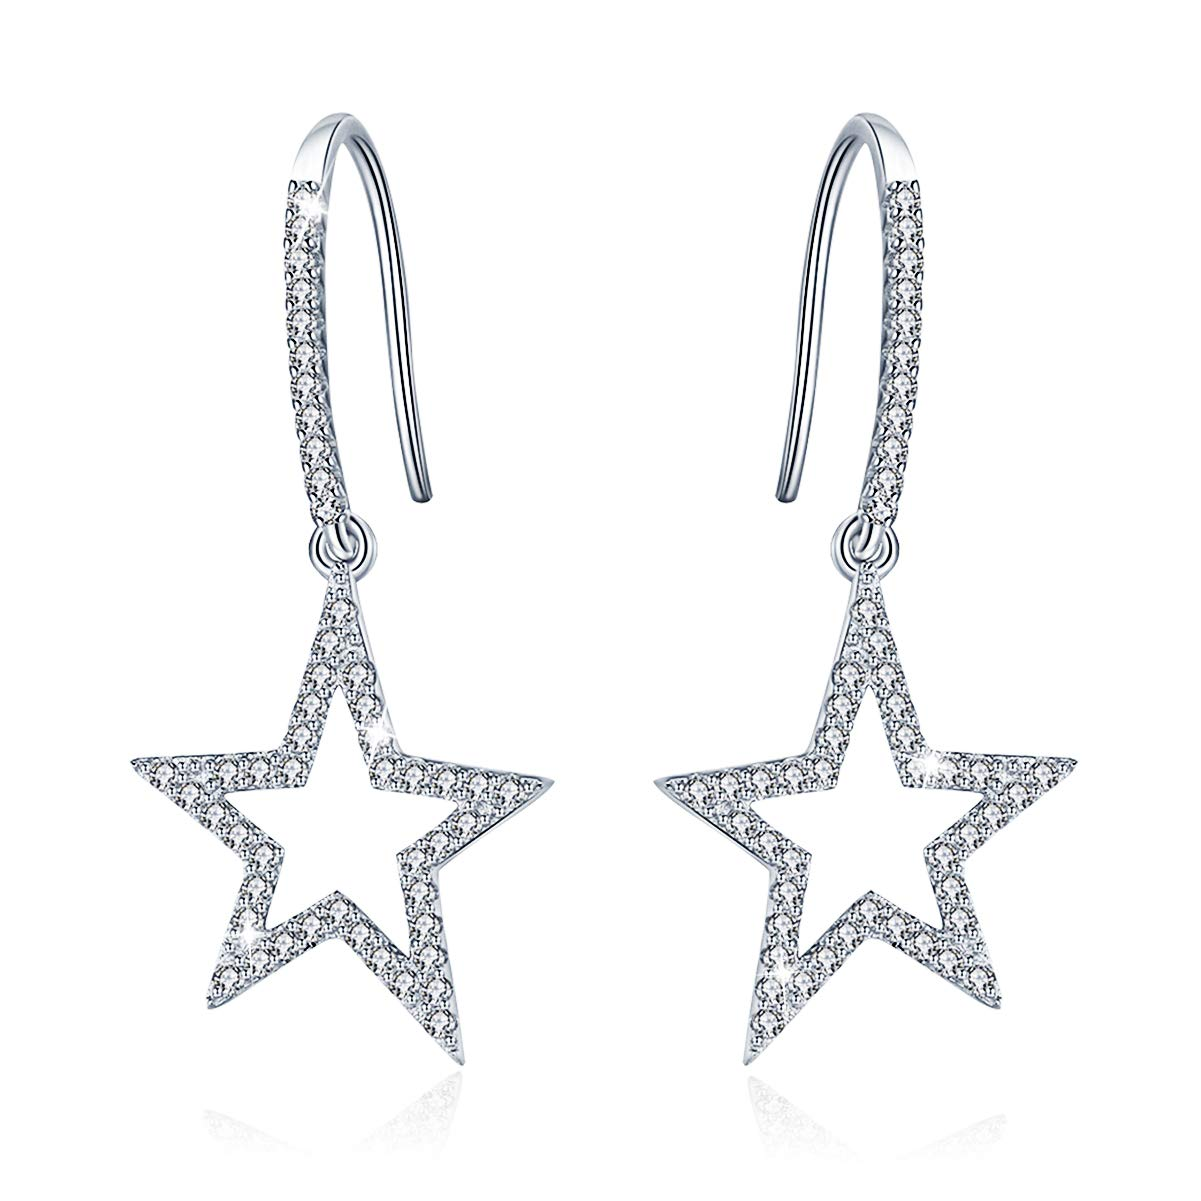 SIMPLOVE Stars Hypoallergenic Earrings 925 Sterling Silver with 5A Cubic Zirconia, Jewelry Accessories for Banquet Party Appointment Wedding, Passed SGS Inspection by SIMPLOVE